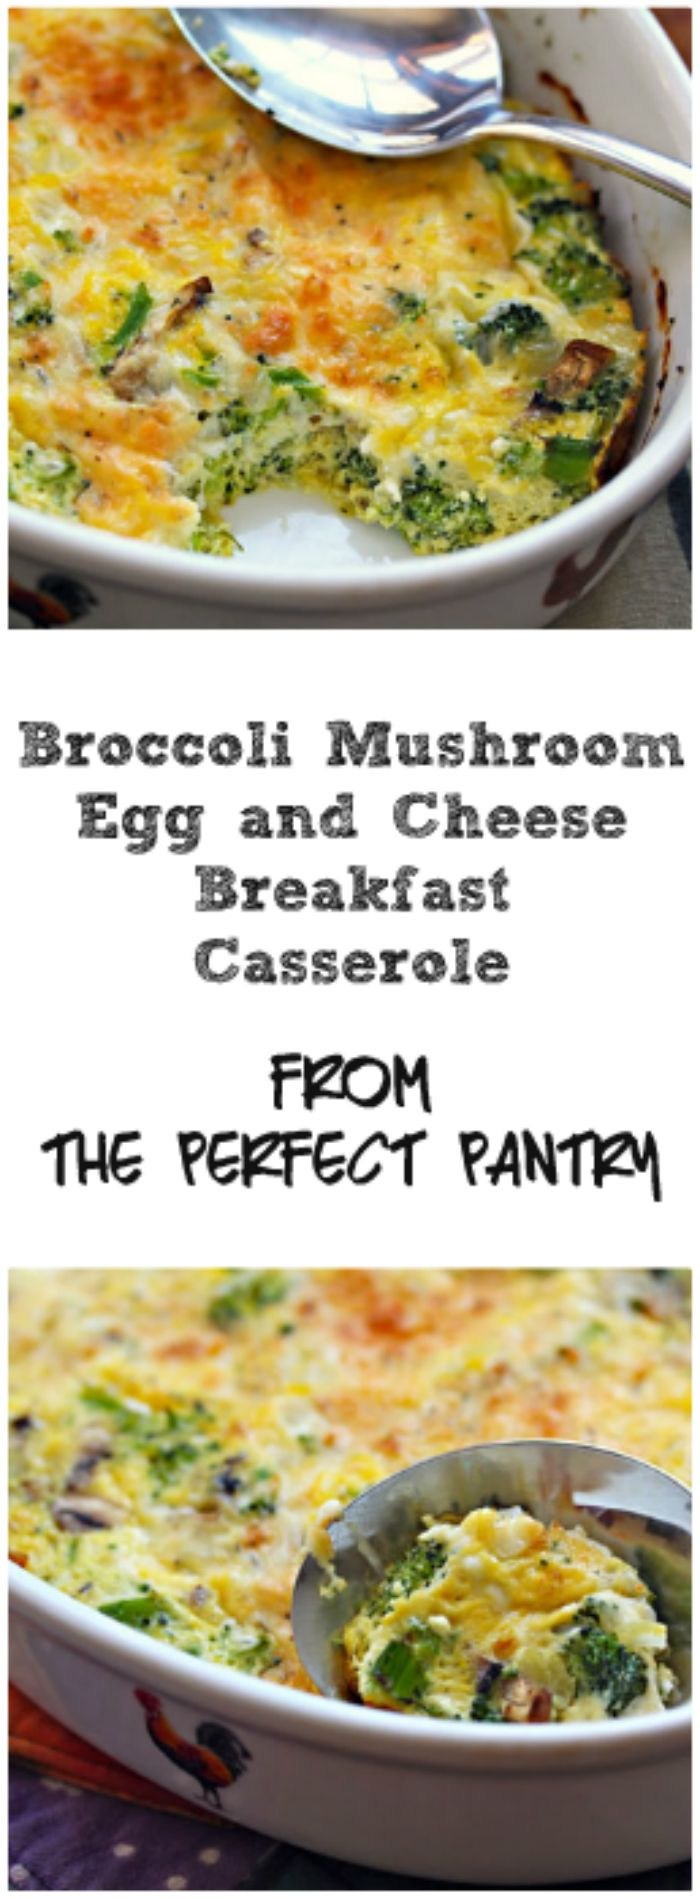 Broccoli, mushroom, egg and cheese breakfast casserole: bake in the oven and it's ready in under an hour. From The Perfect Pantry.